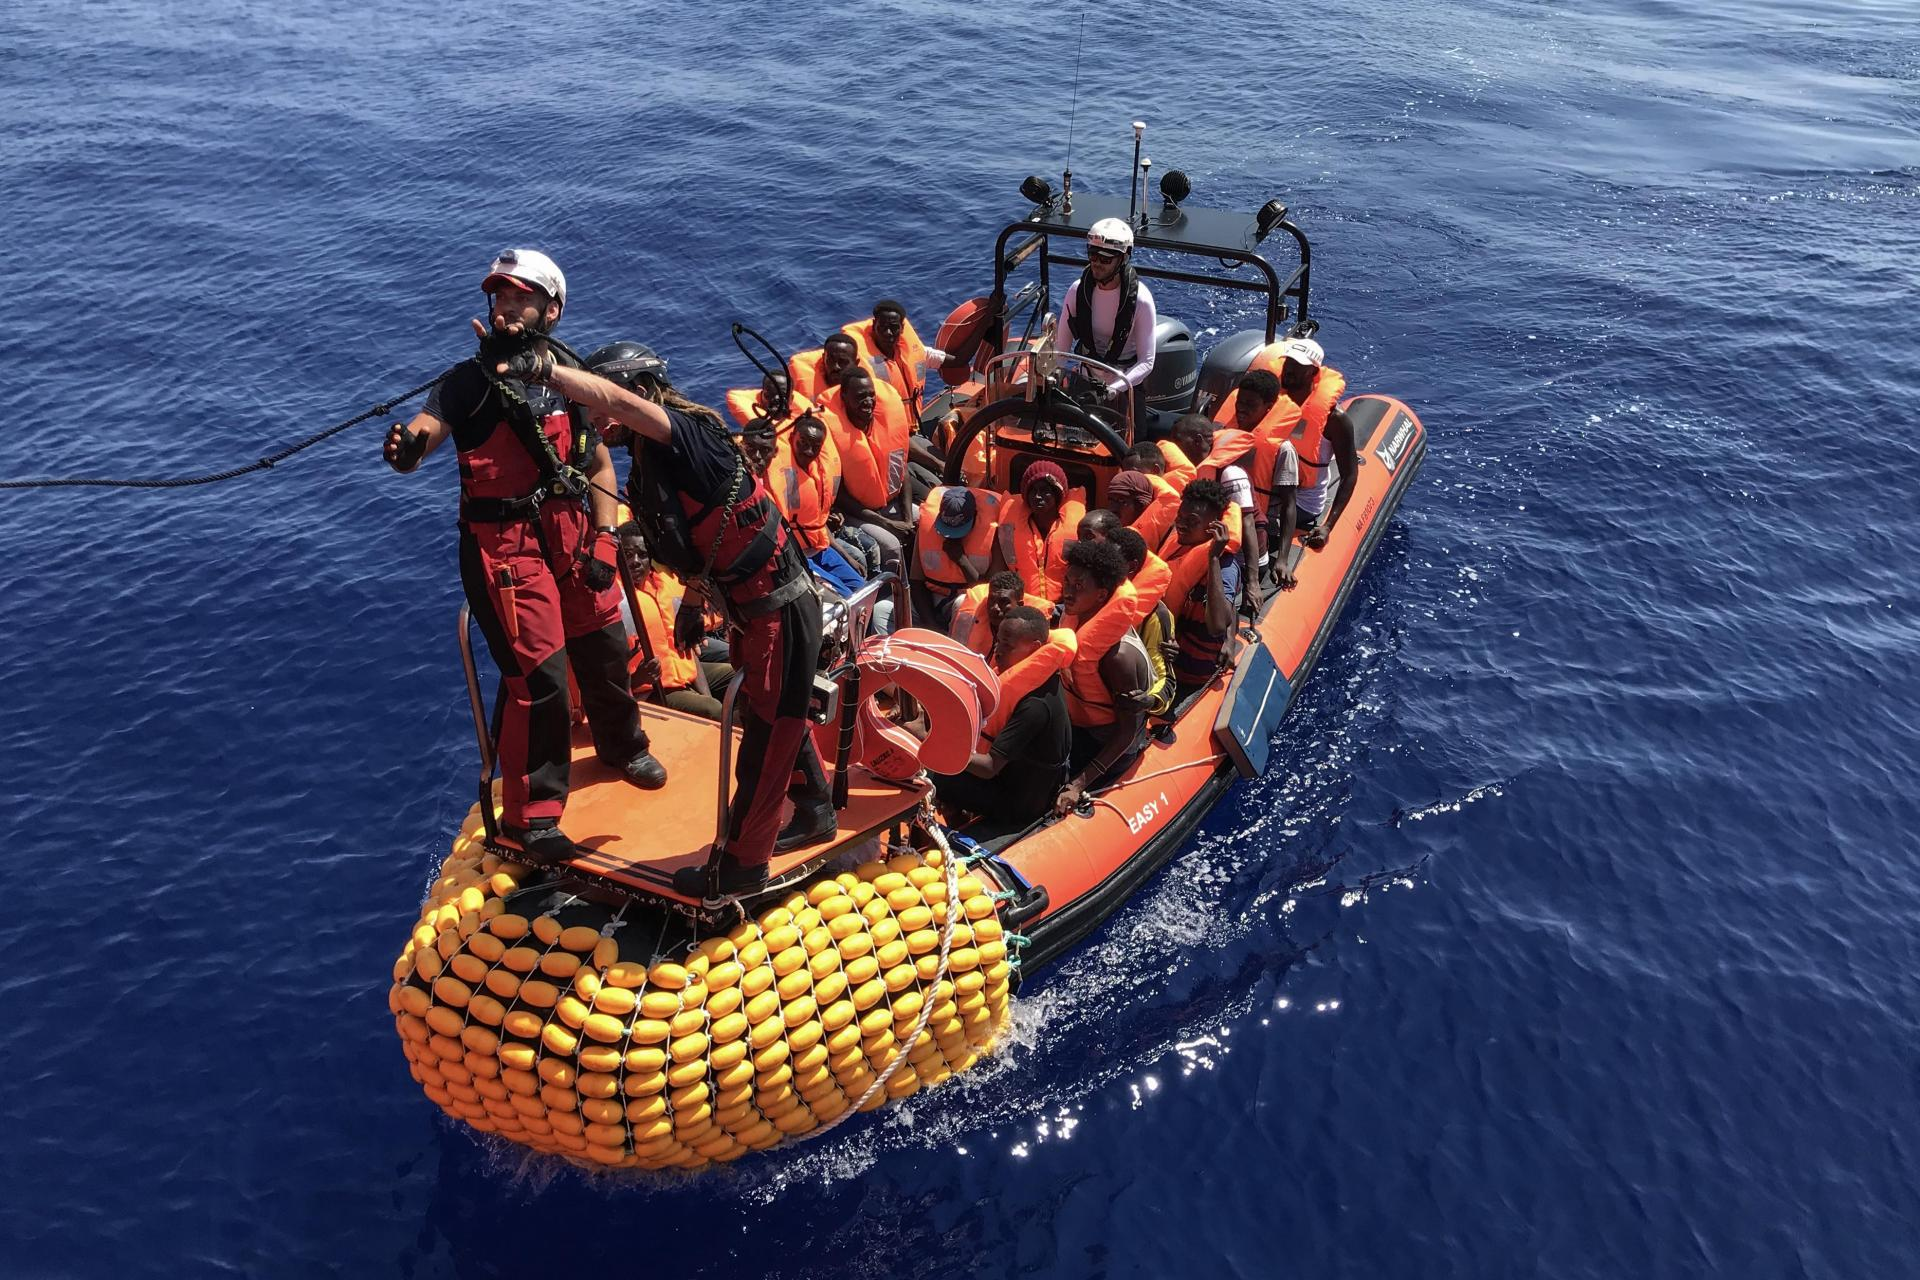 UNHCR to investigate Malta over allegations of ignoring distressed migrants